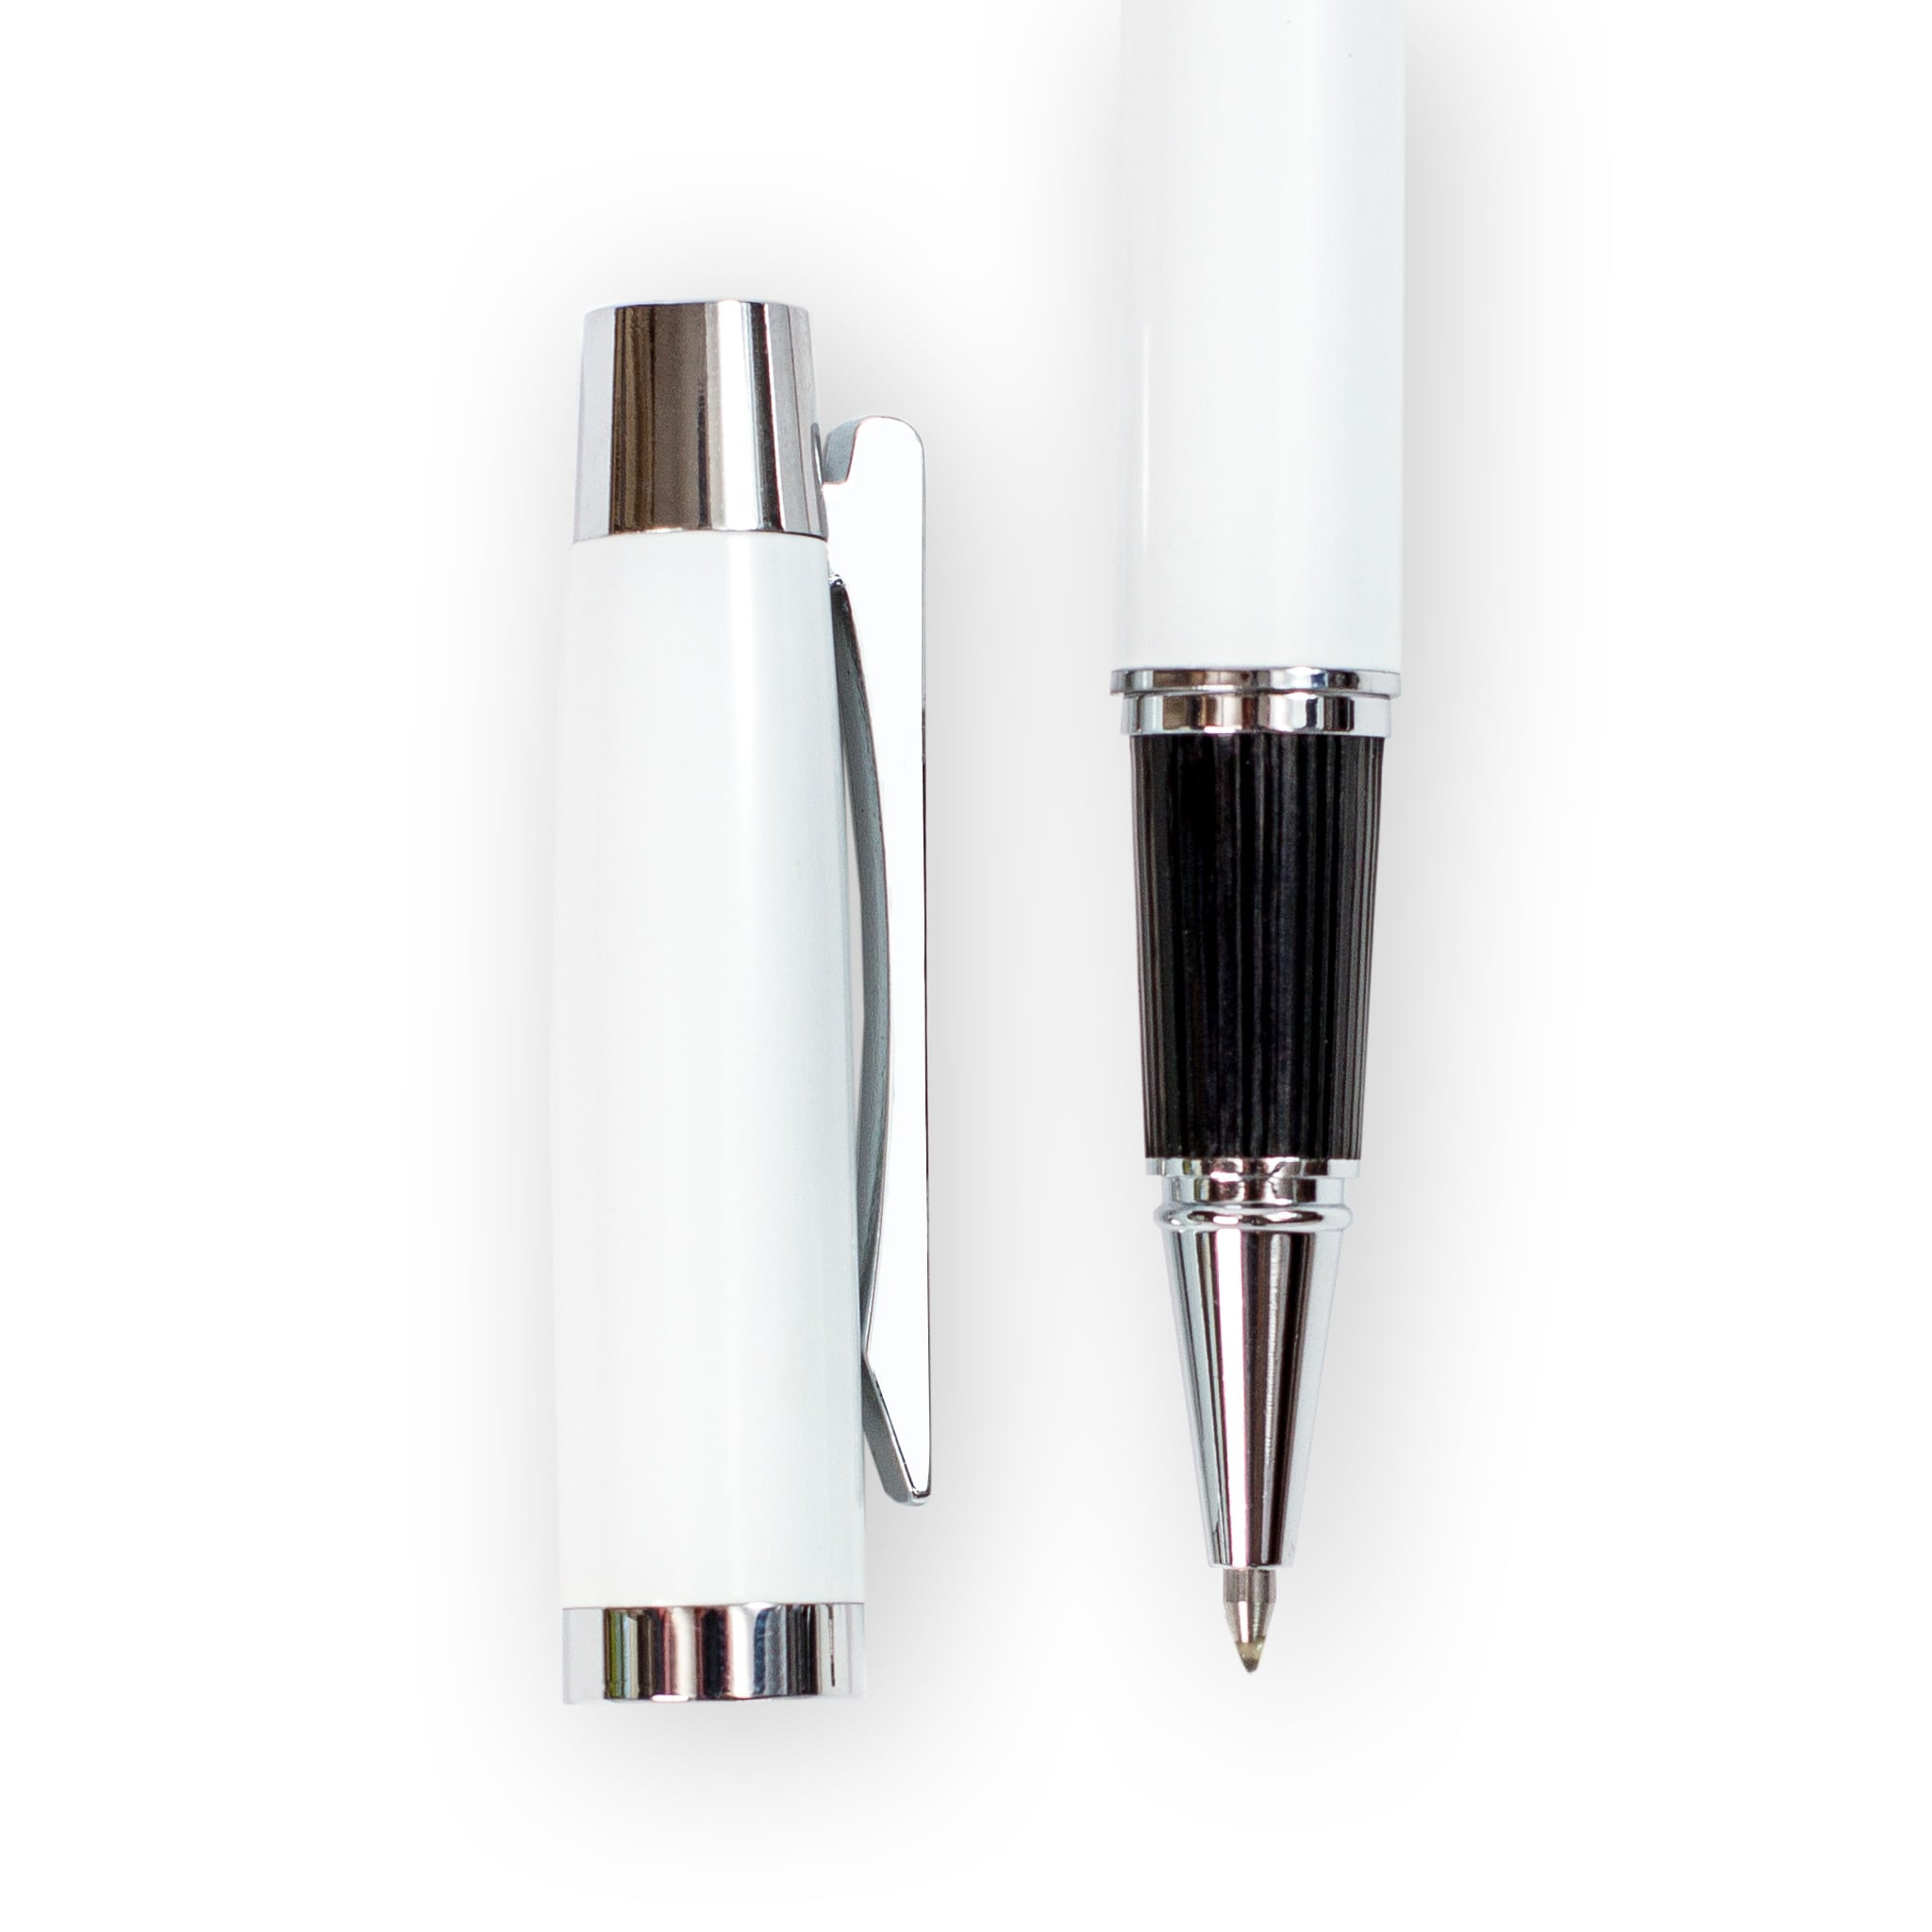 Prestige Edition Luxury Pen - Radiant White - Free Shipping